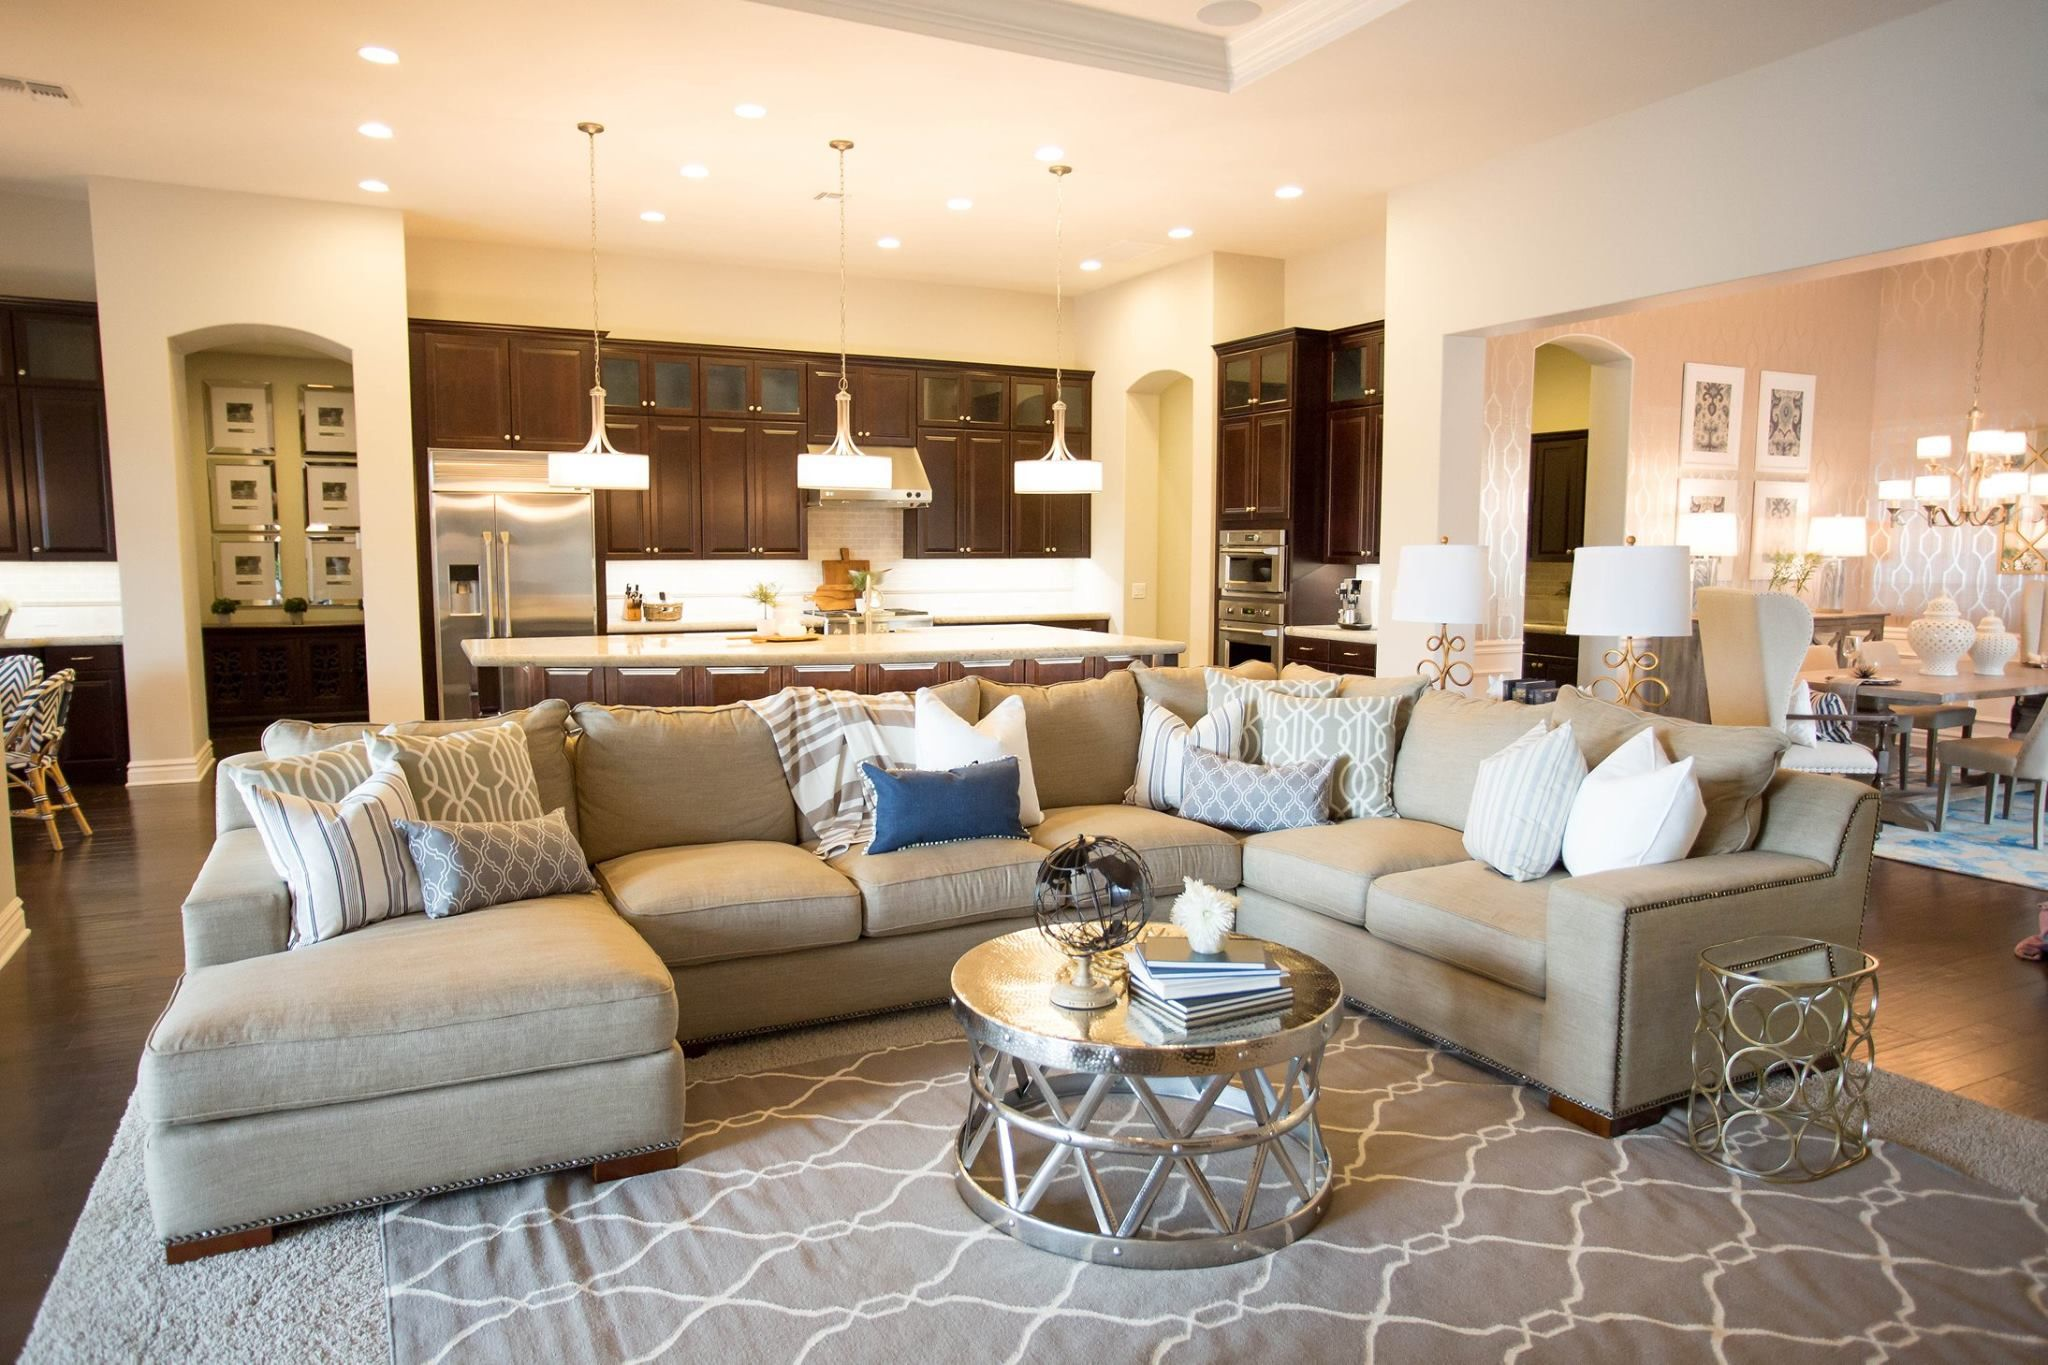 Transitional Living Room Cozy Traditional Transitional Rustic Glam Living Room Goals Transitional Living Rooms Family Room Design Living Room Carpet Concept transitional family room